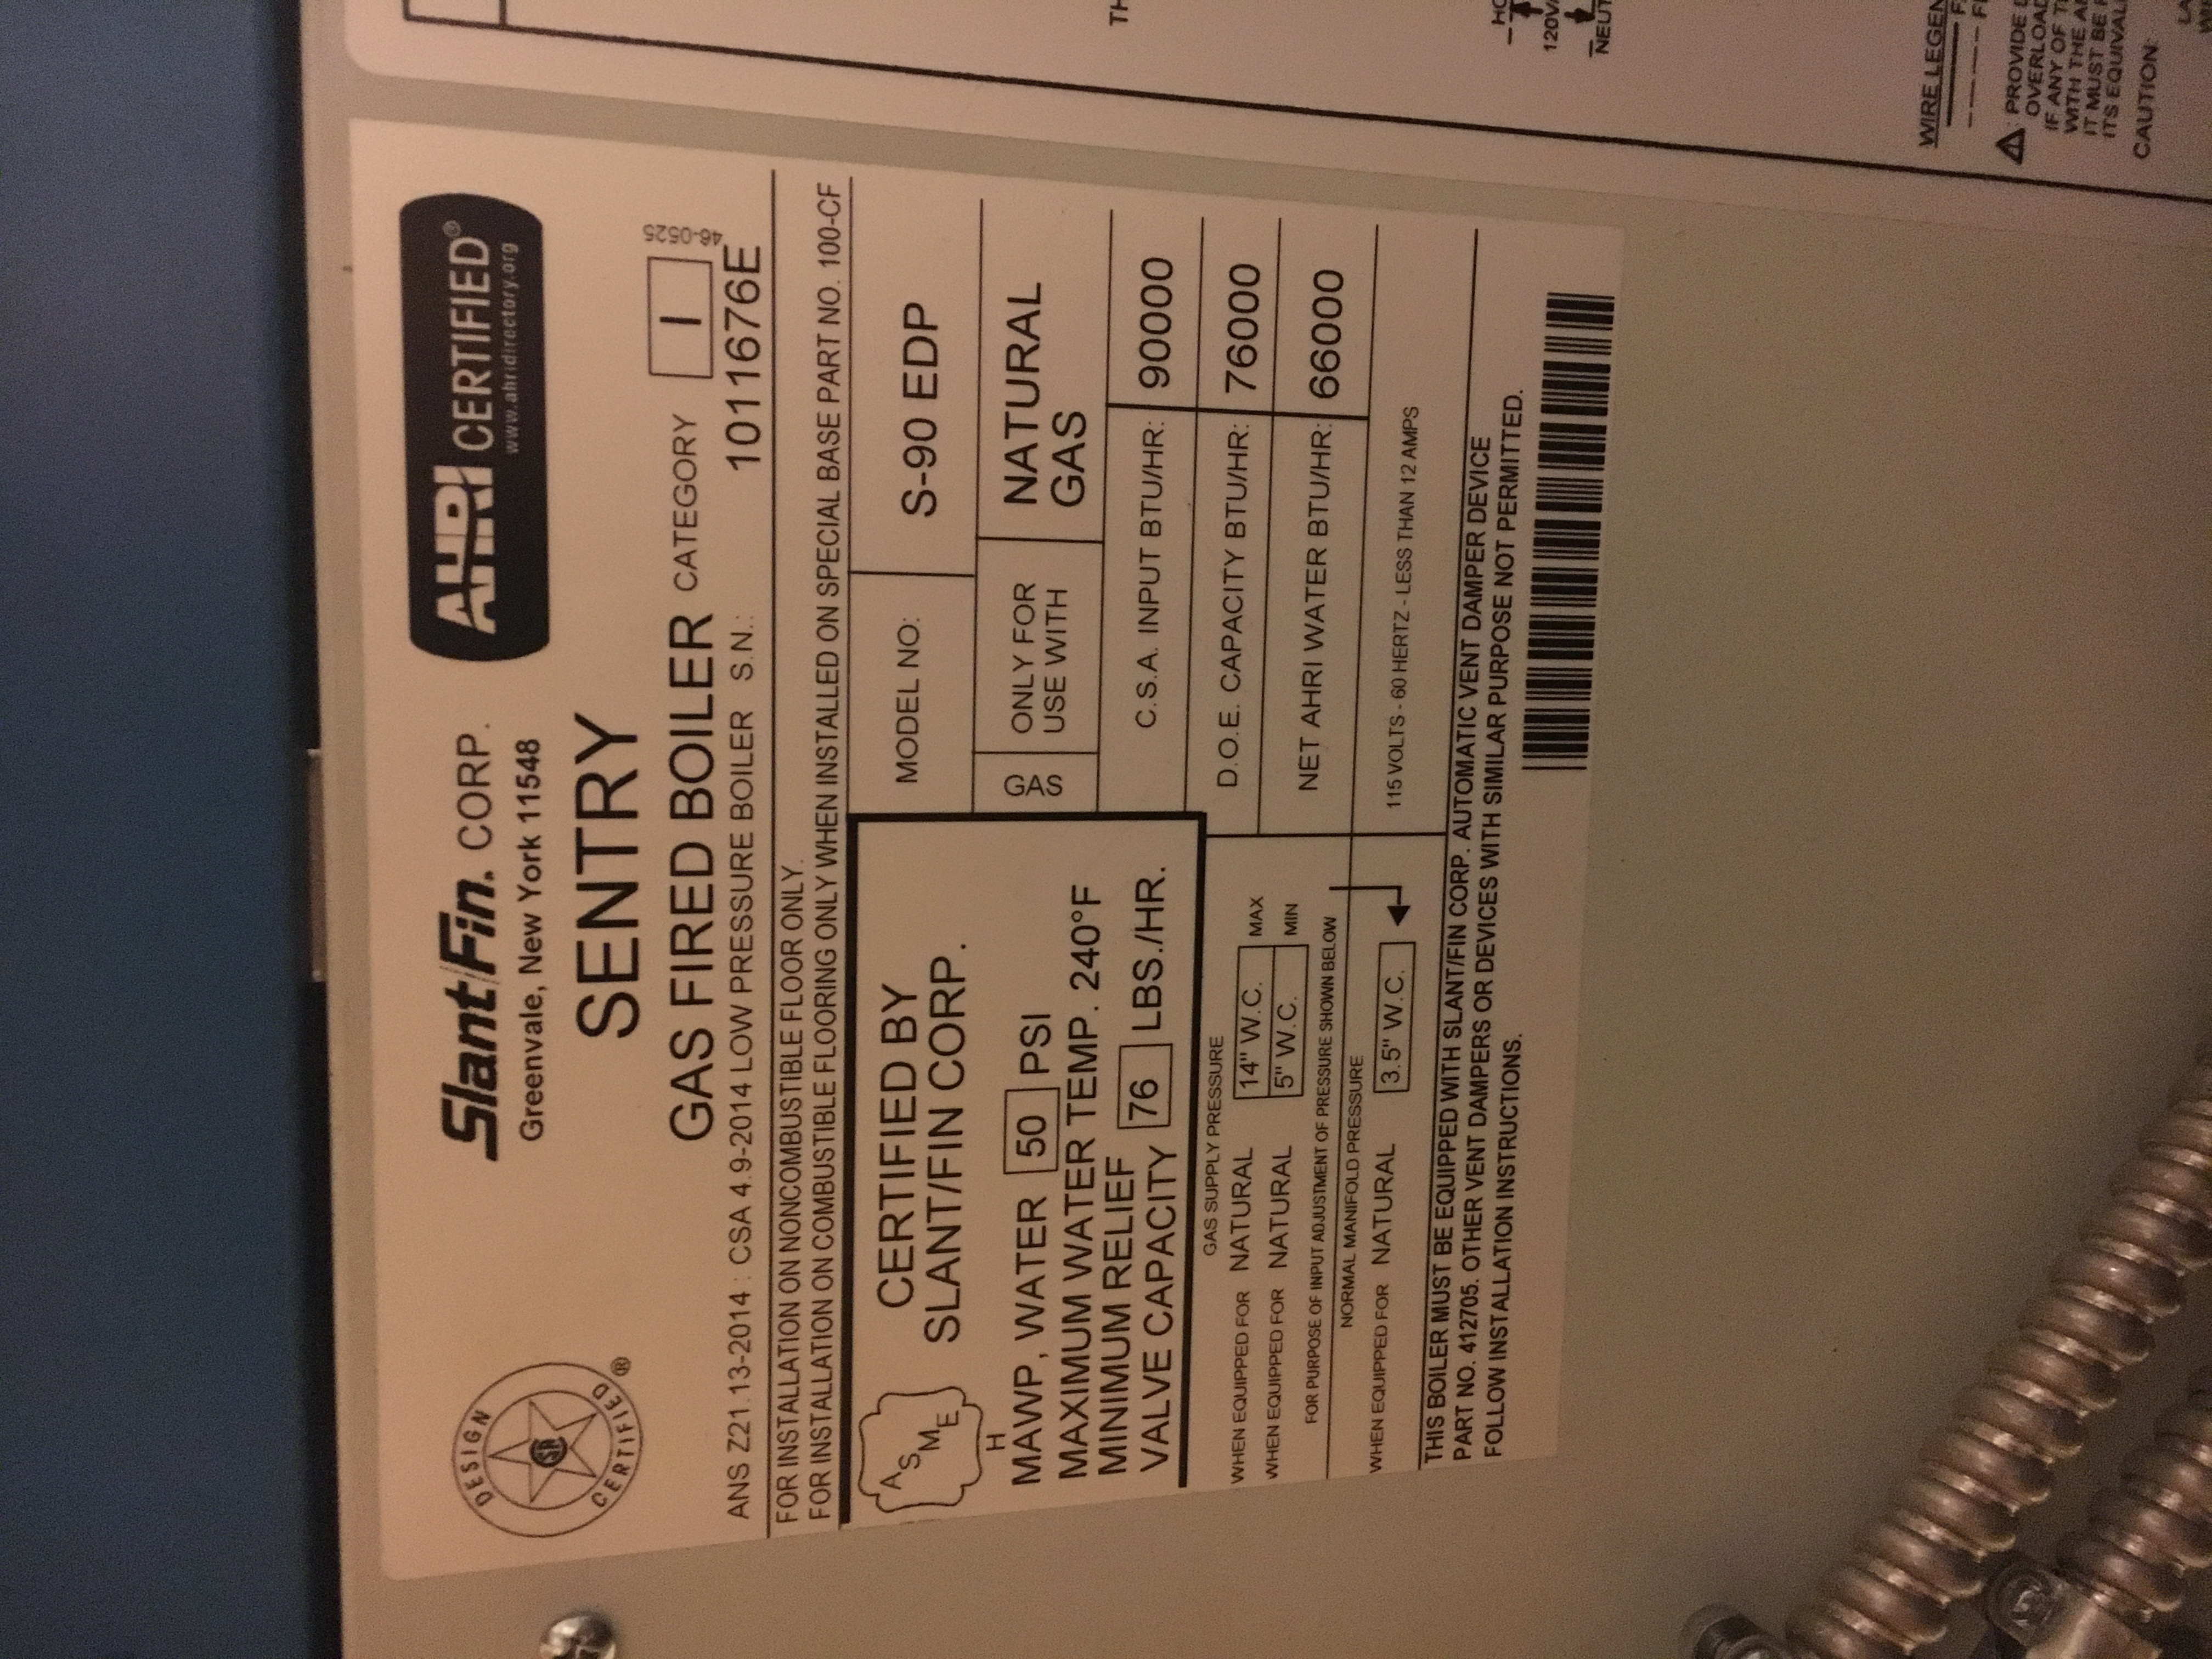 I Have A Sentry Gas Fired Boiler With An Old Battery Powered Slant Fin Wiring Diagram S90 Photo